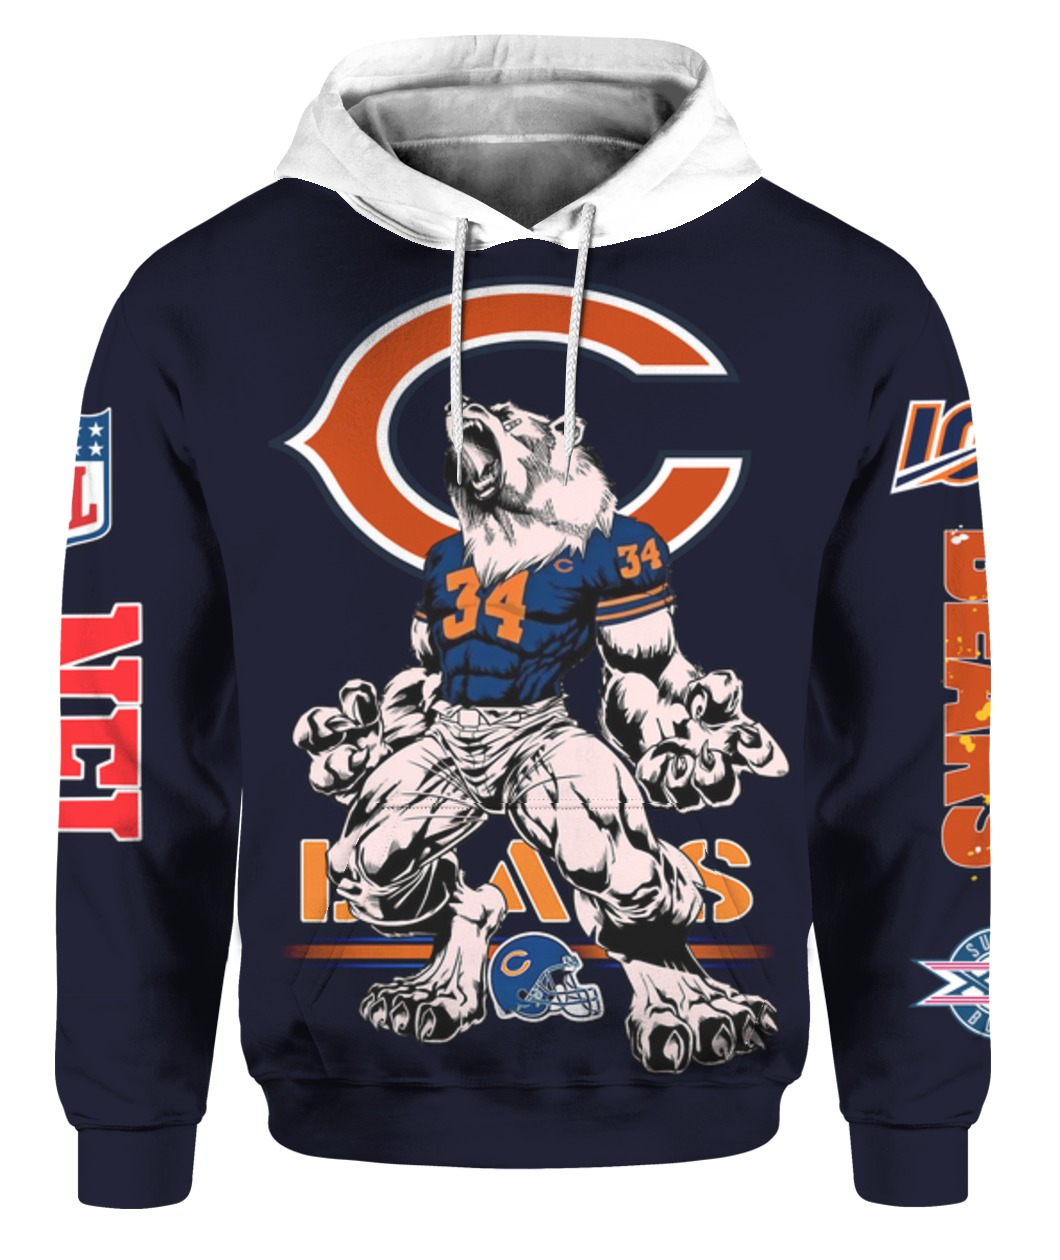 Chicago bears mascot all over print hoodie 1